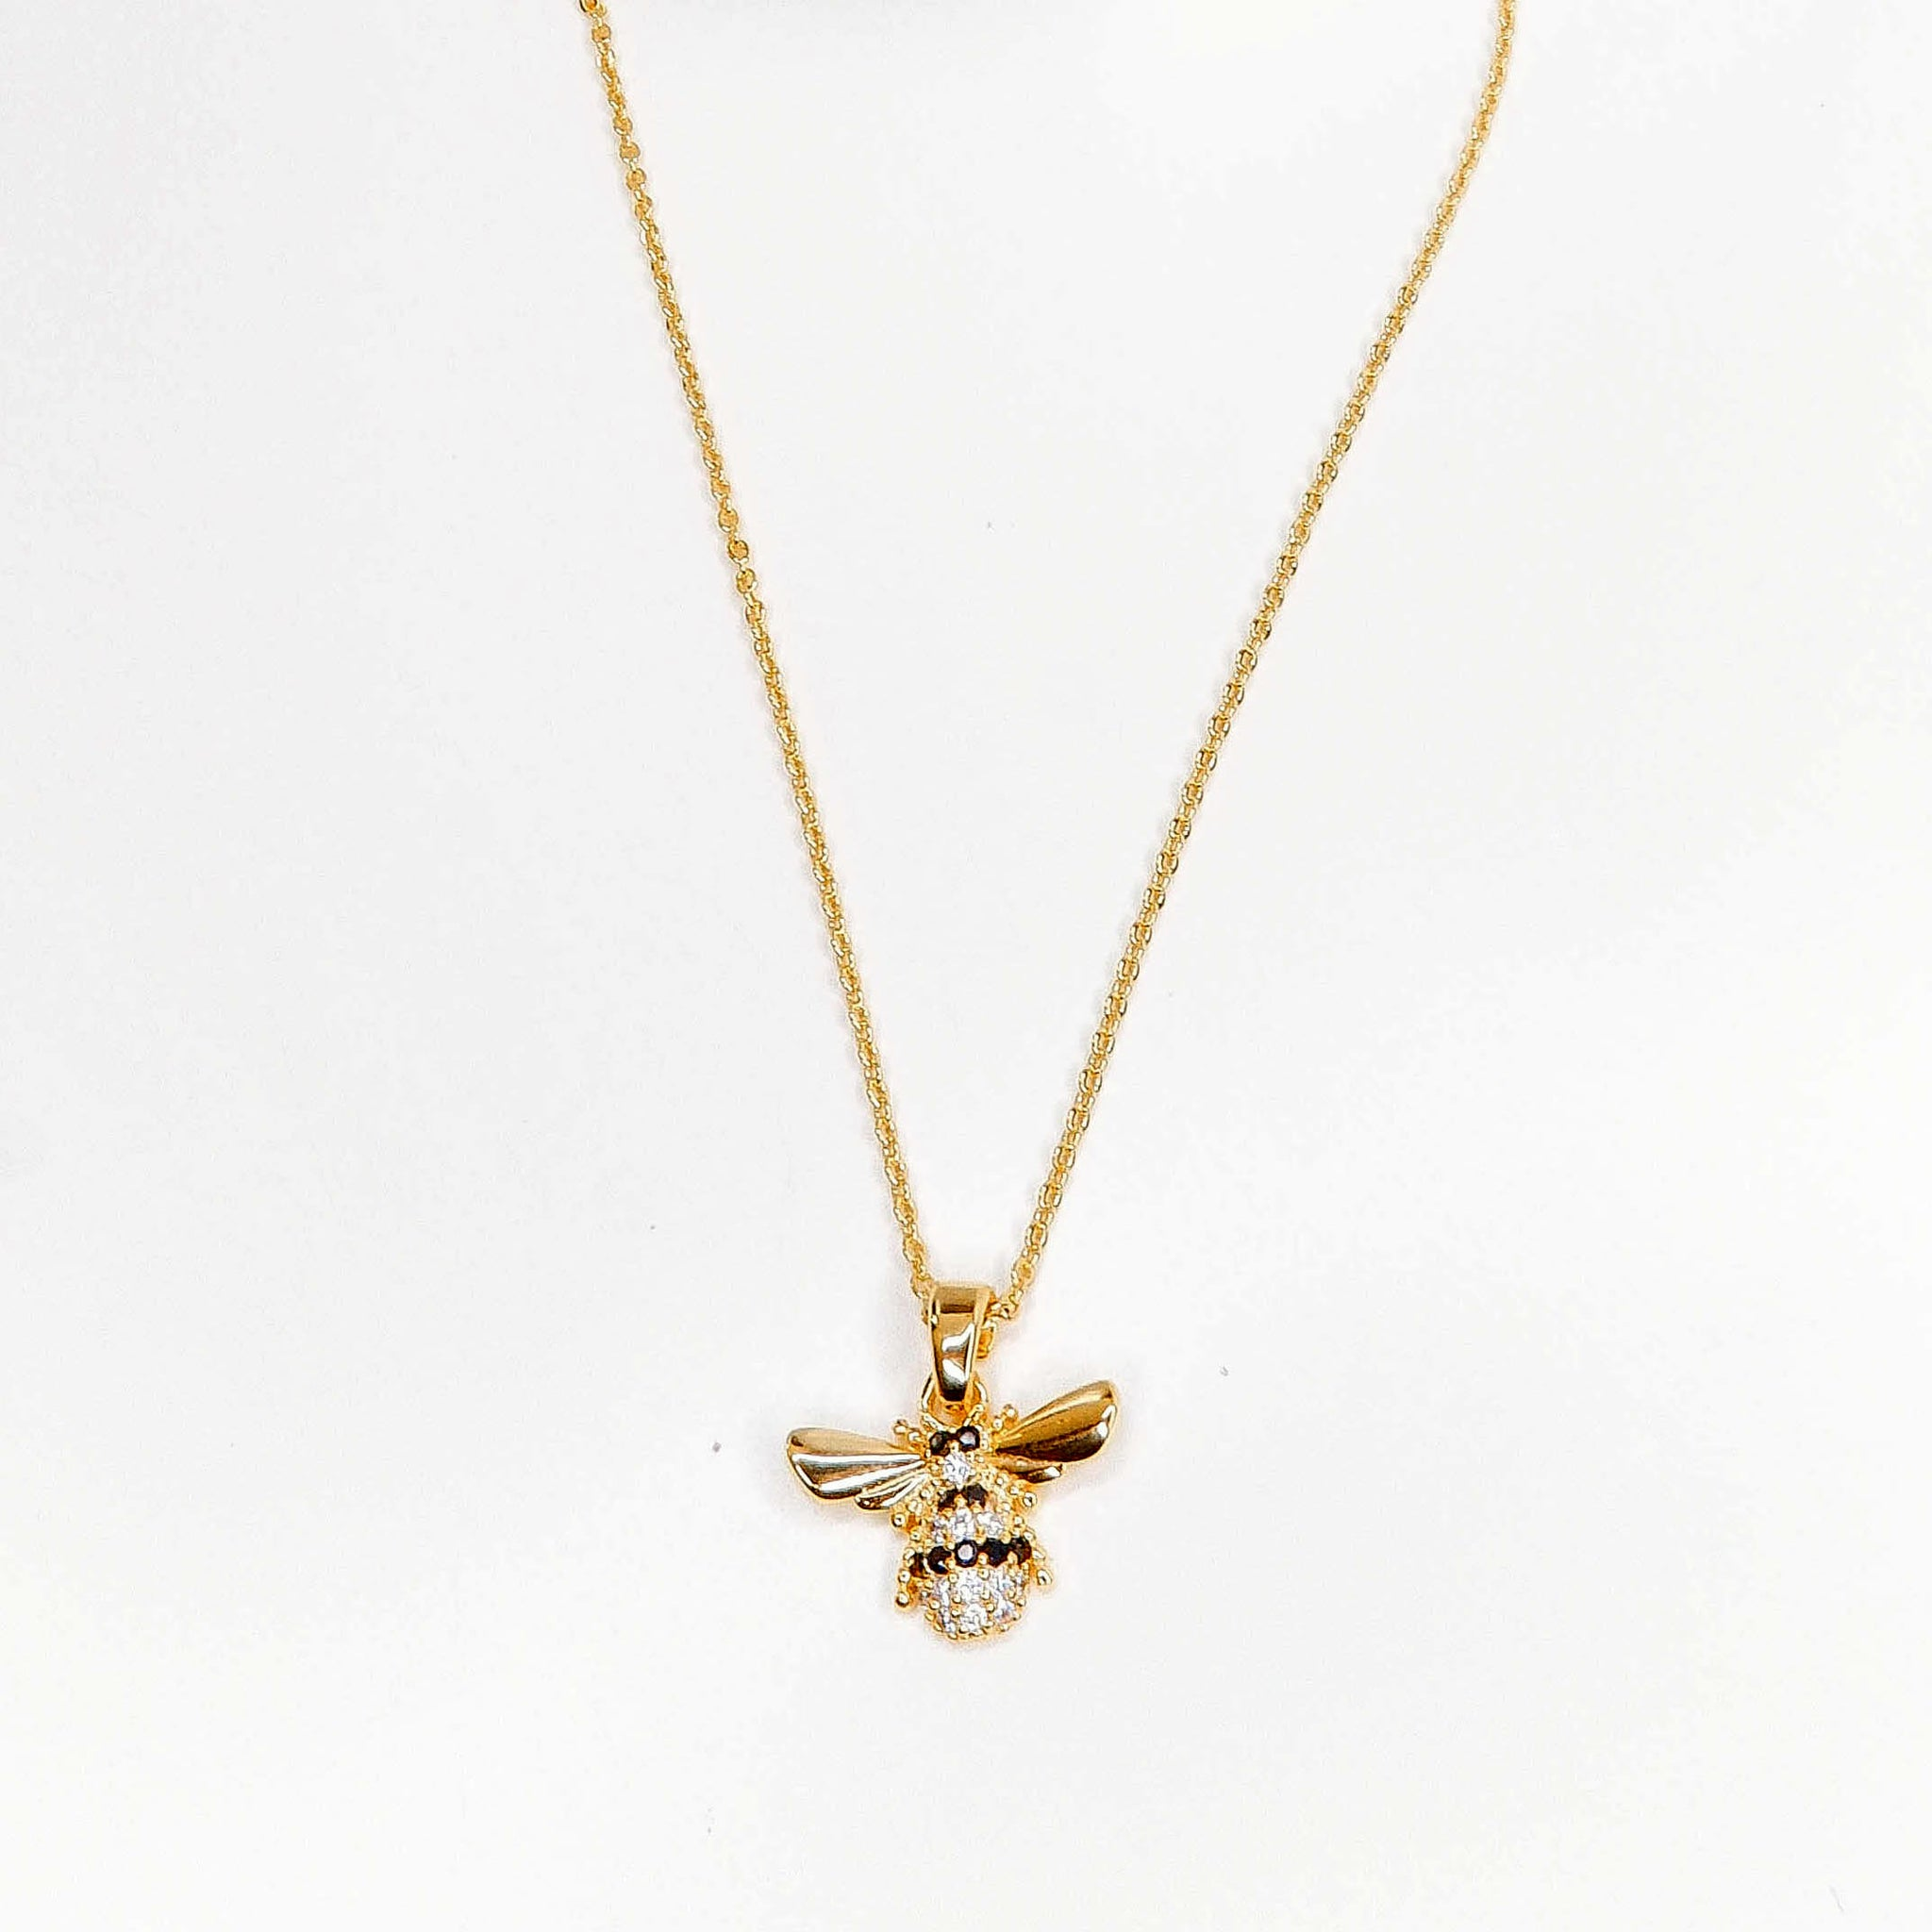 Abeille Necklace